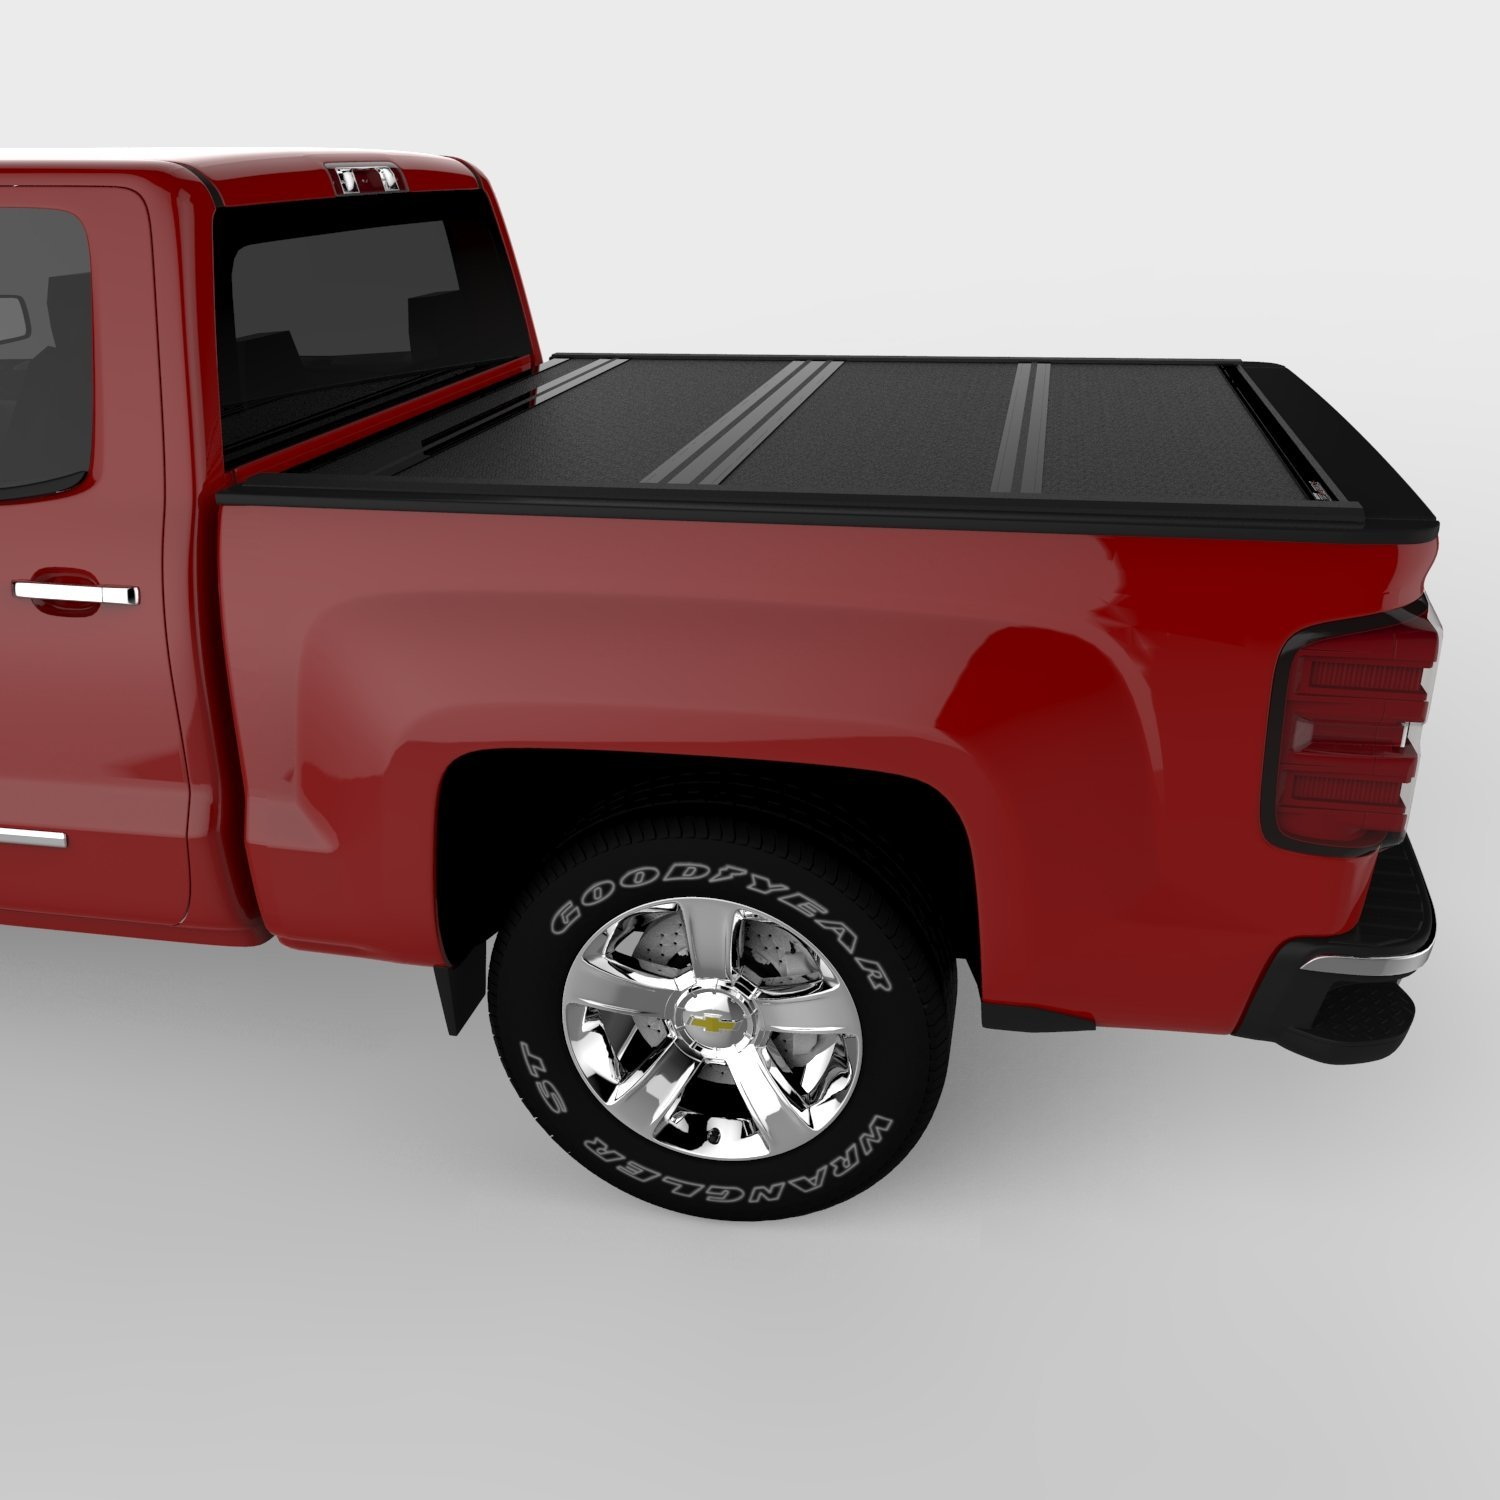 UnderCover Black Ultra Flex Tonneau Cover with Ultra Low Profile Design